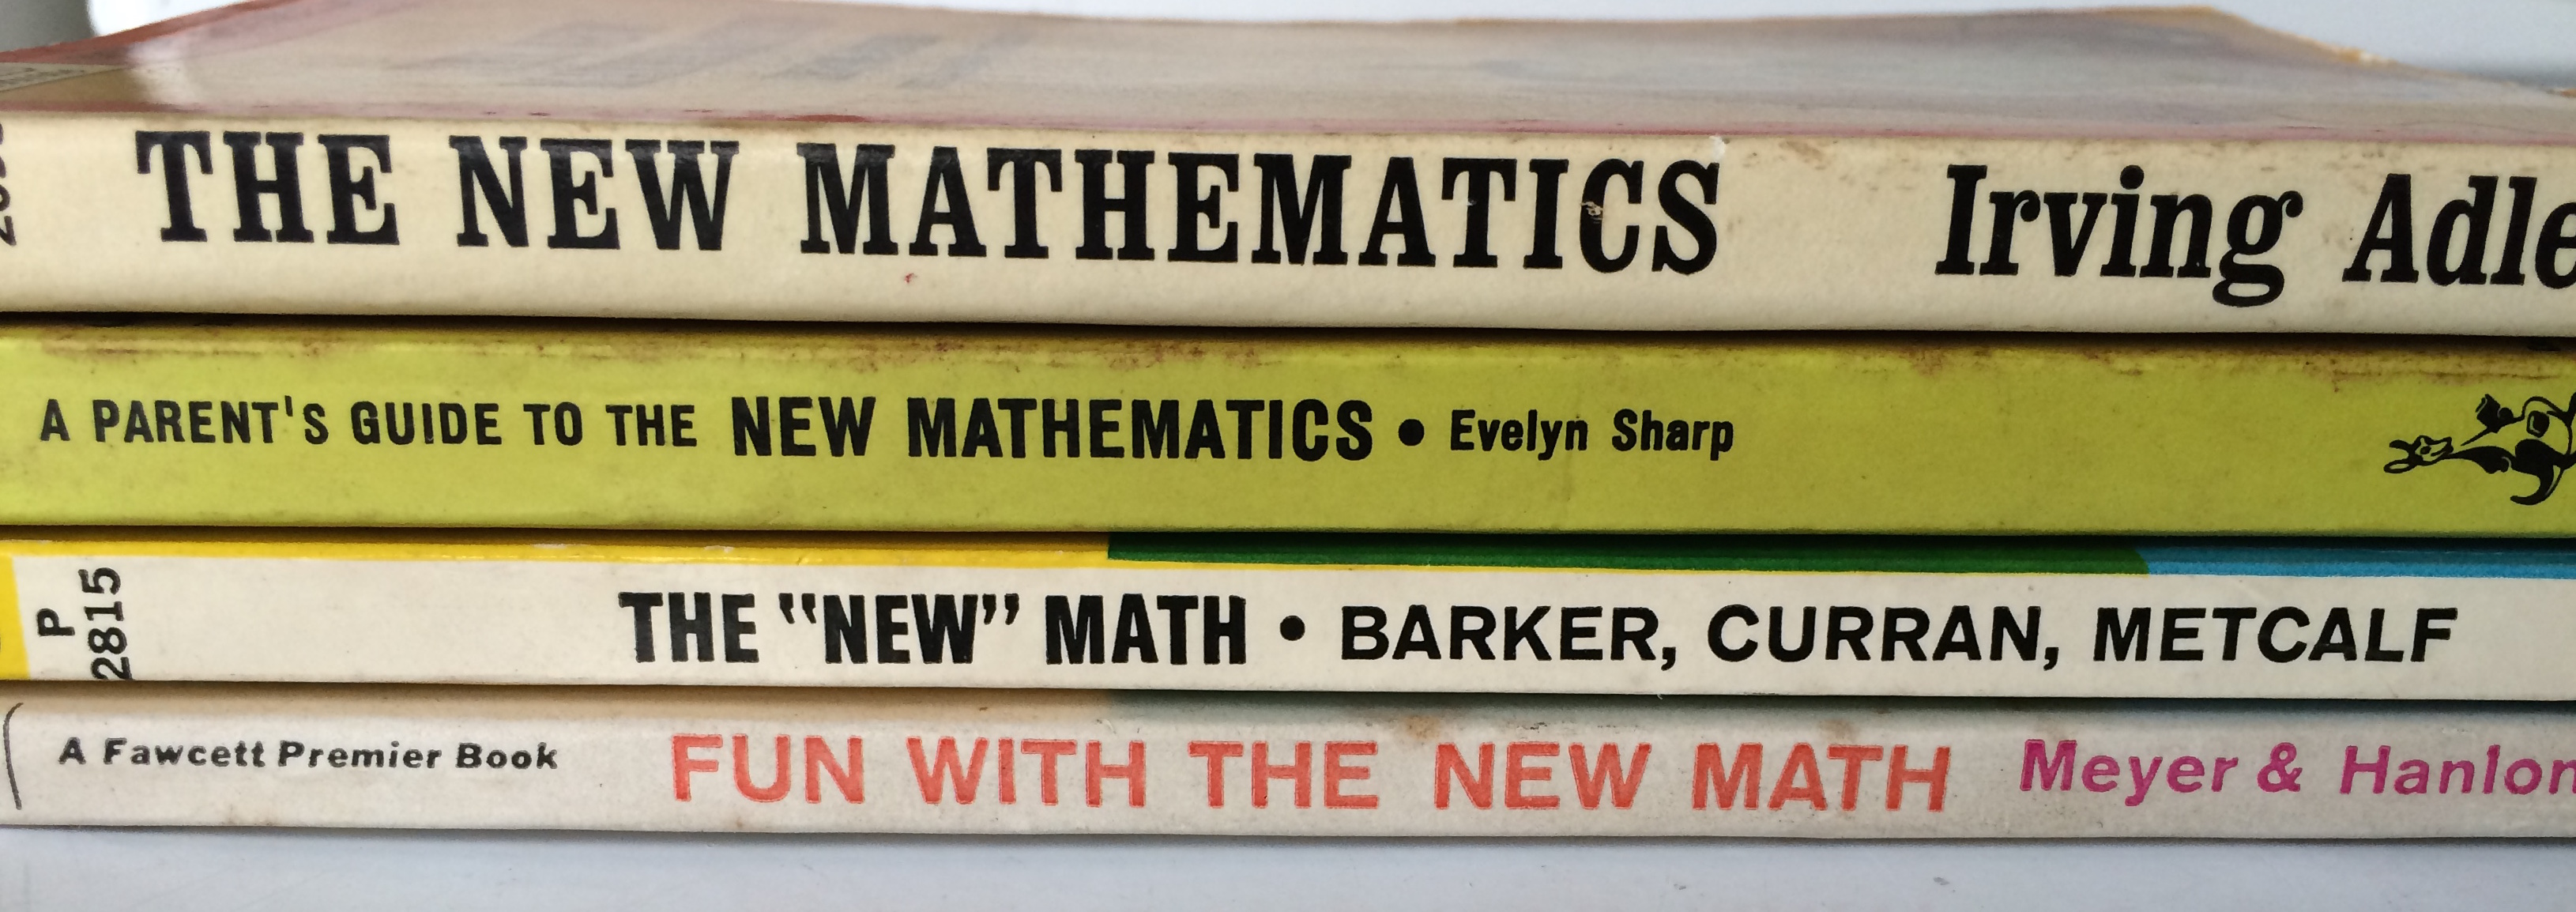 Spines_of_New_Math_paperbacks_from_1960s.jpg